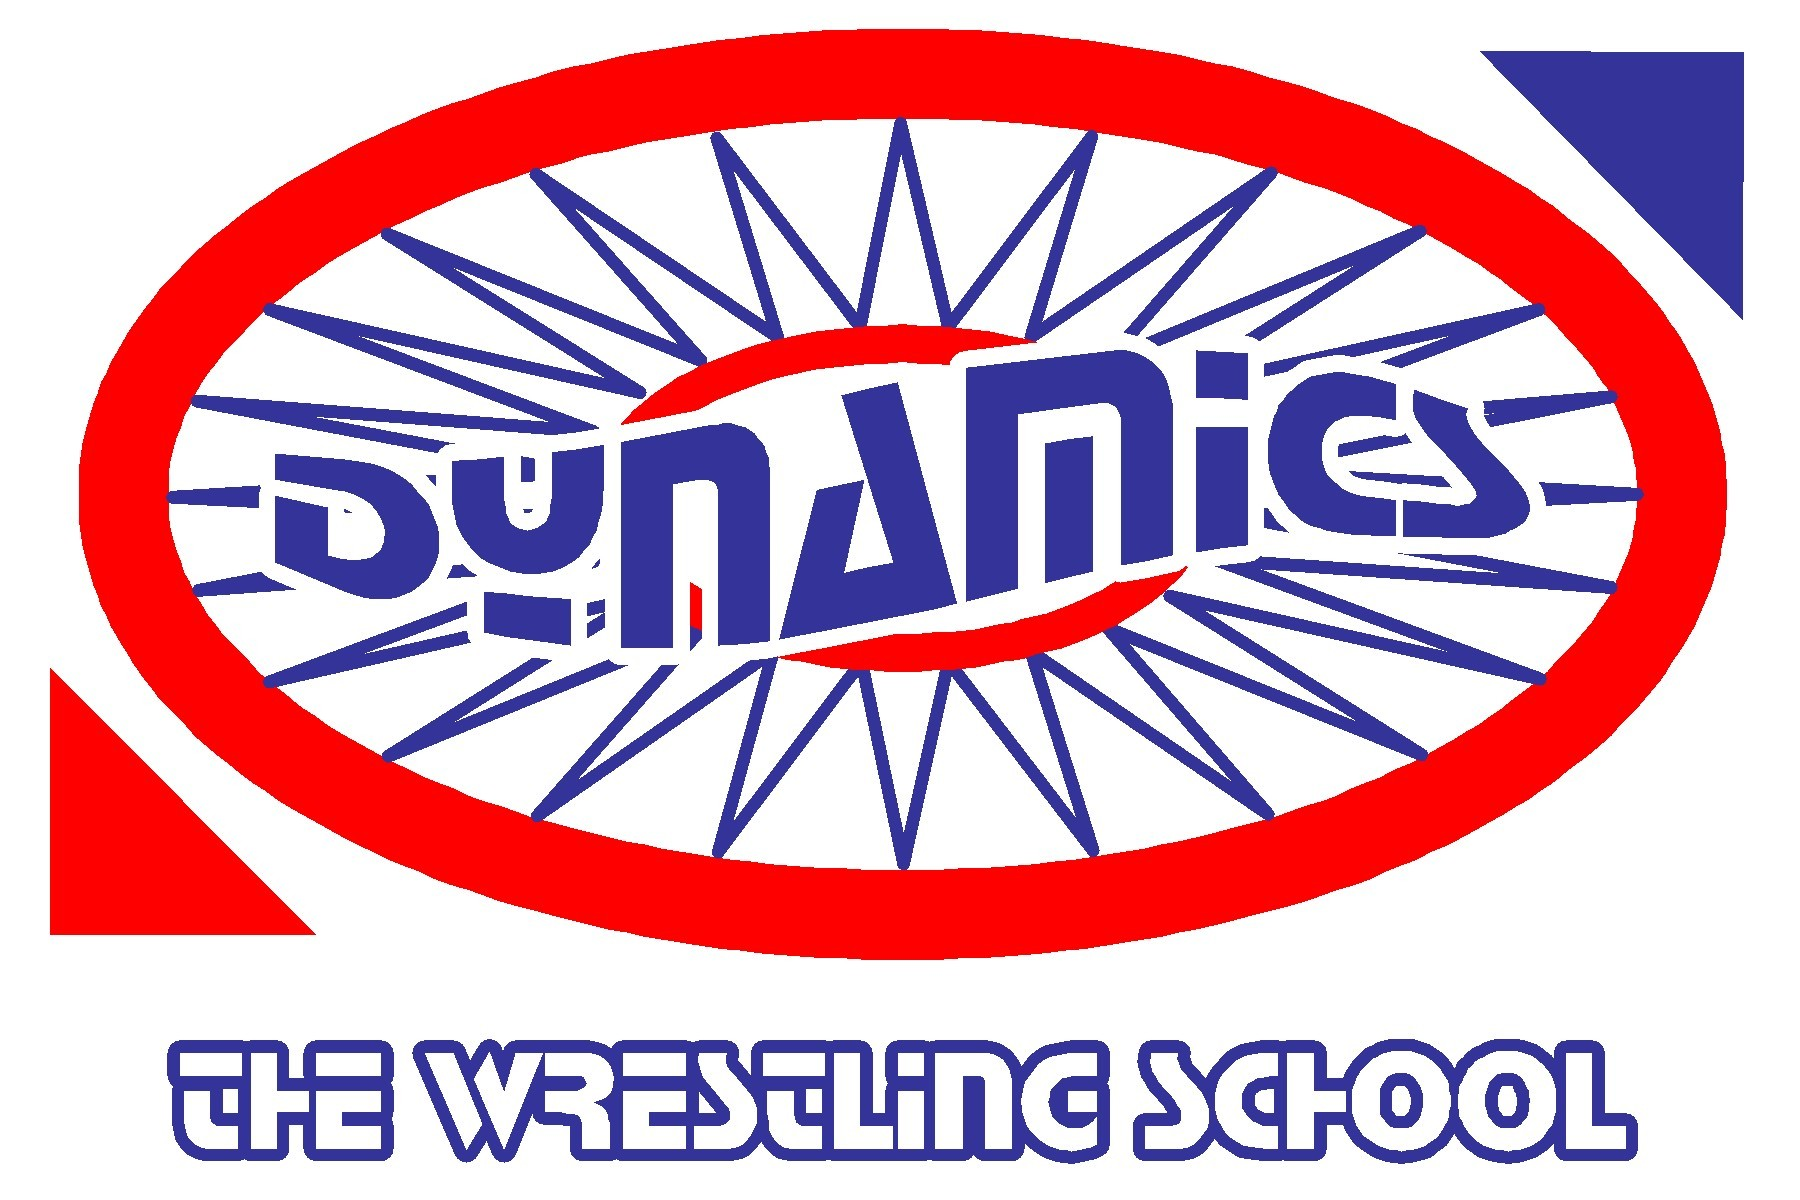 3-D DYNAMICS - WRESTLING & FITNESS